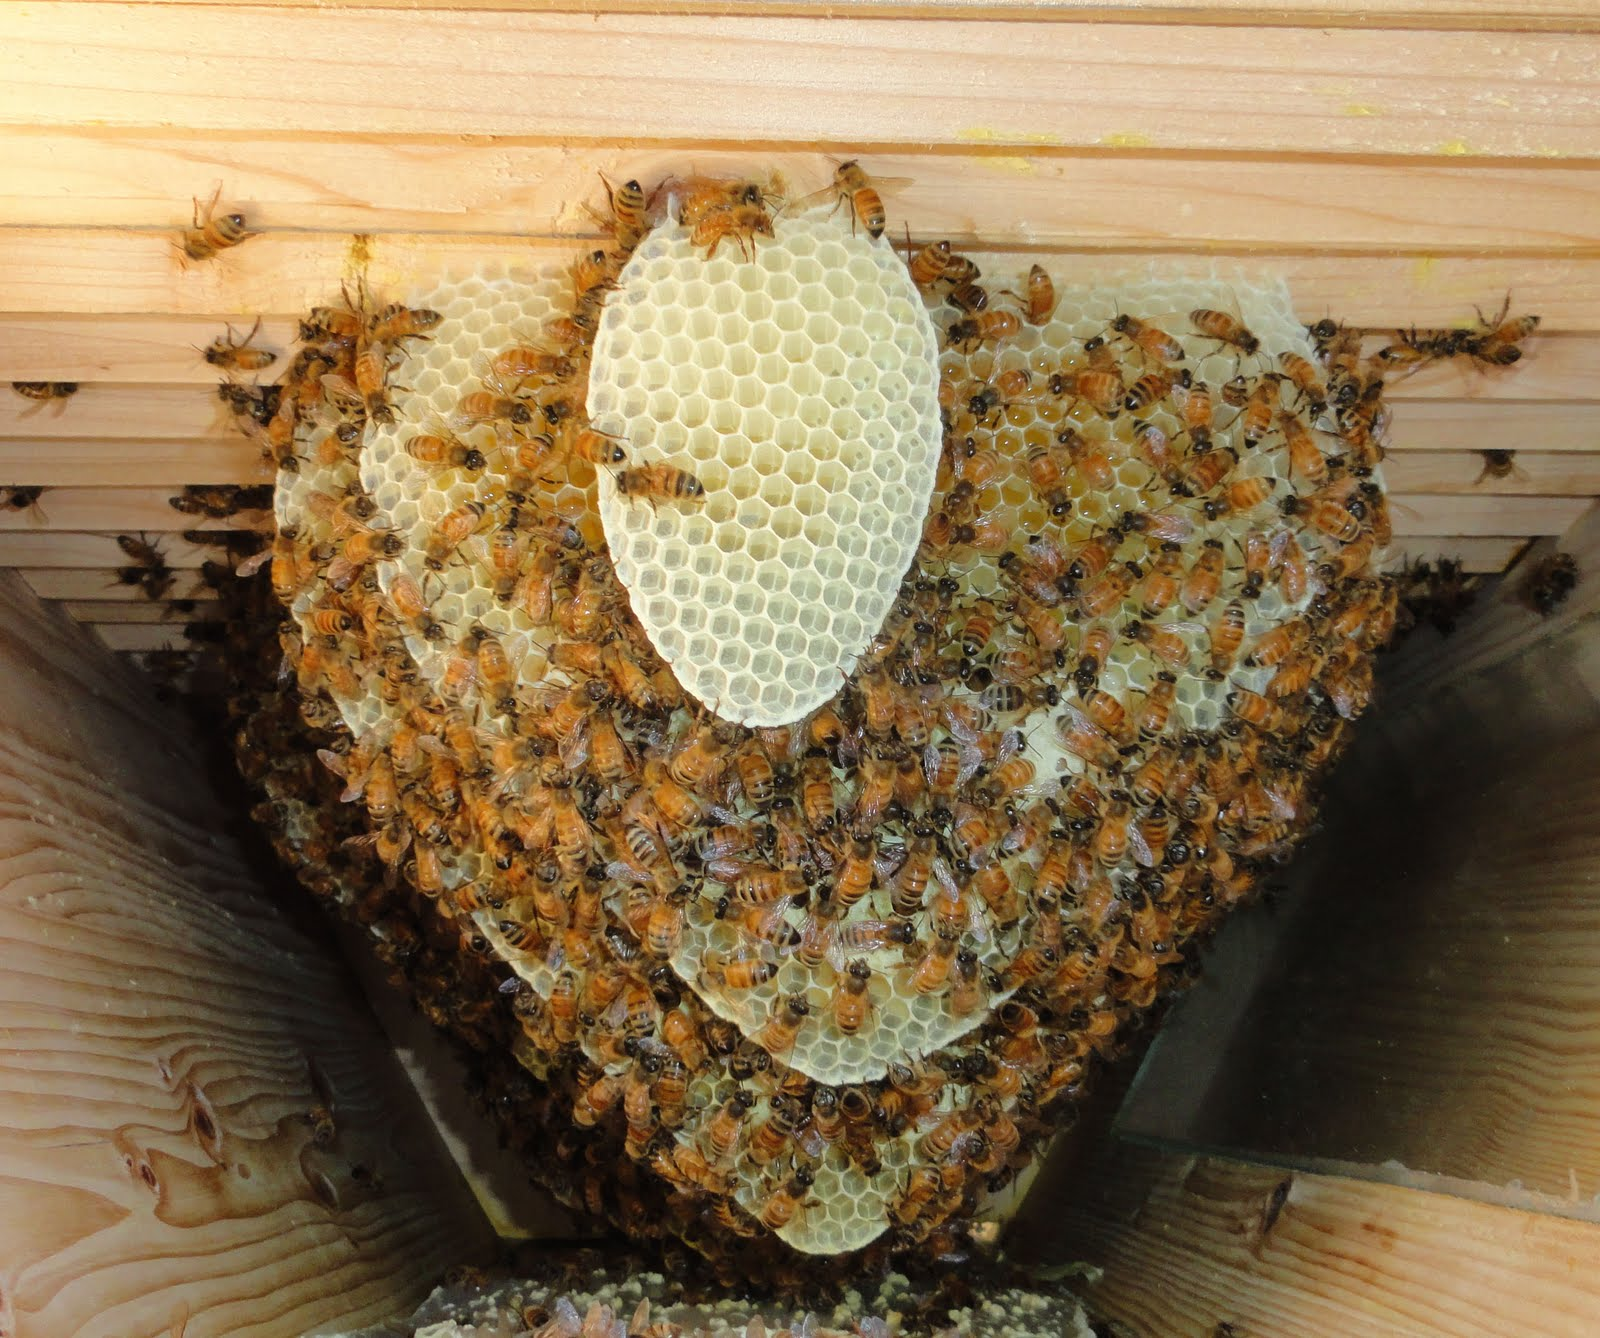 Mustang Dreams....: New Comb In The Bee Hive